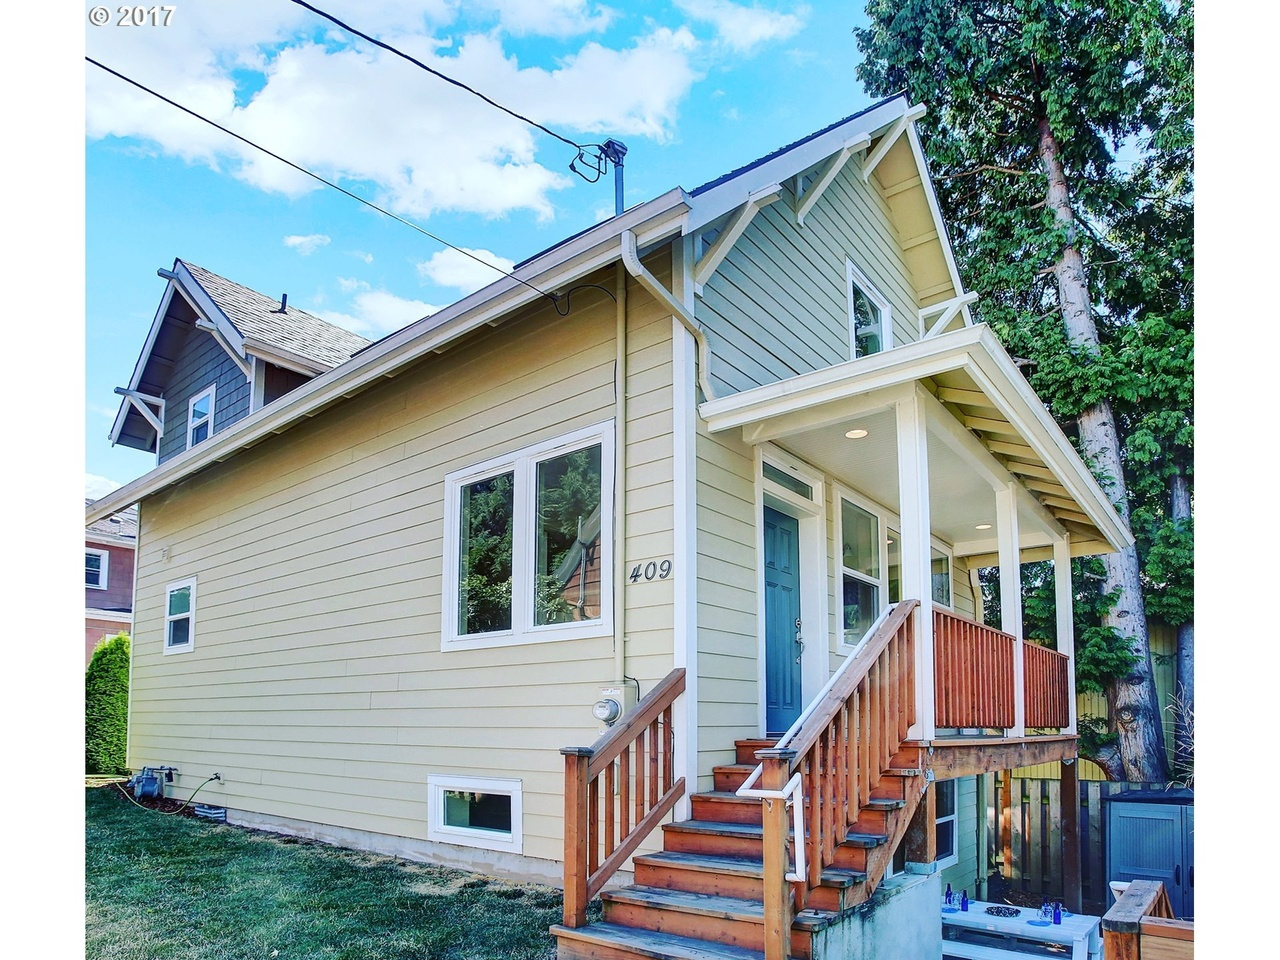 409 SE 20th Ave, Portland, OR 97214 | MLS# 17050206 | Redfin